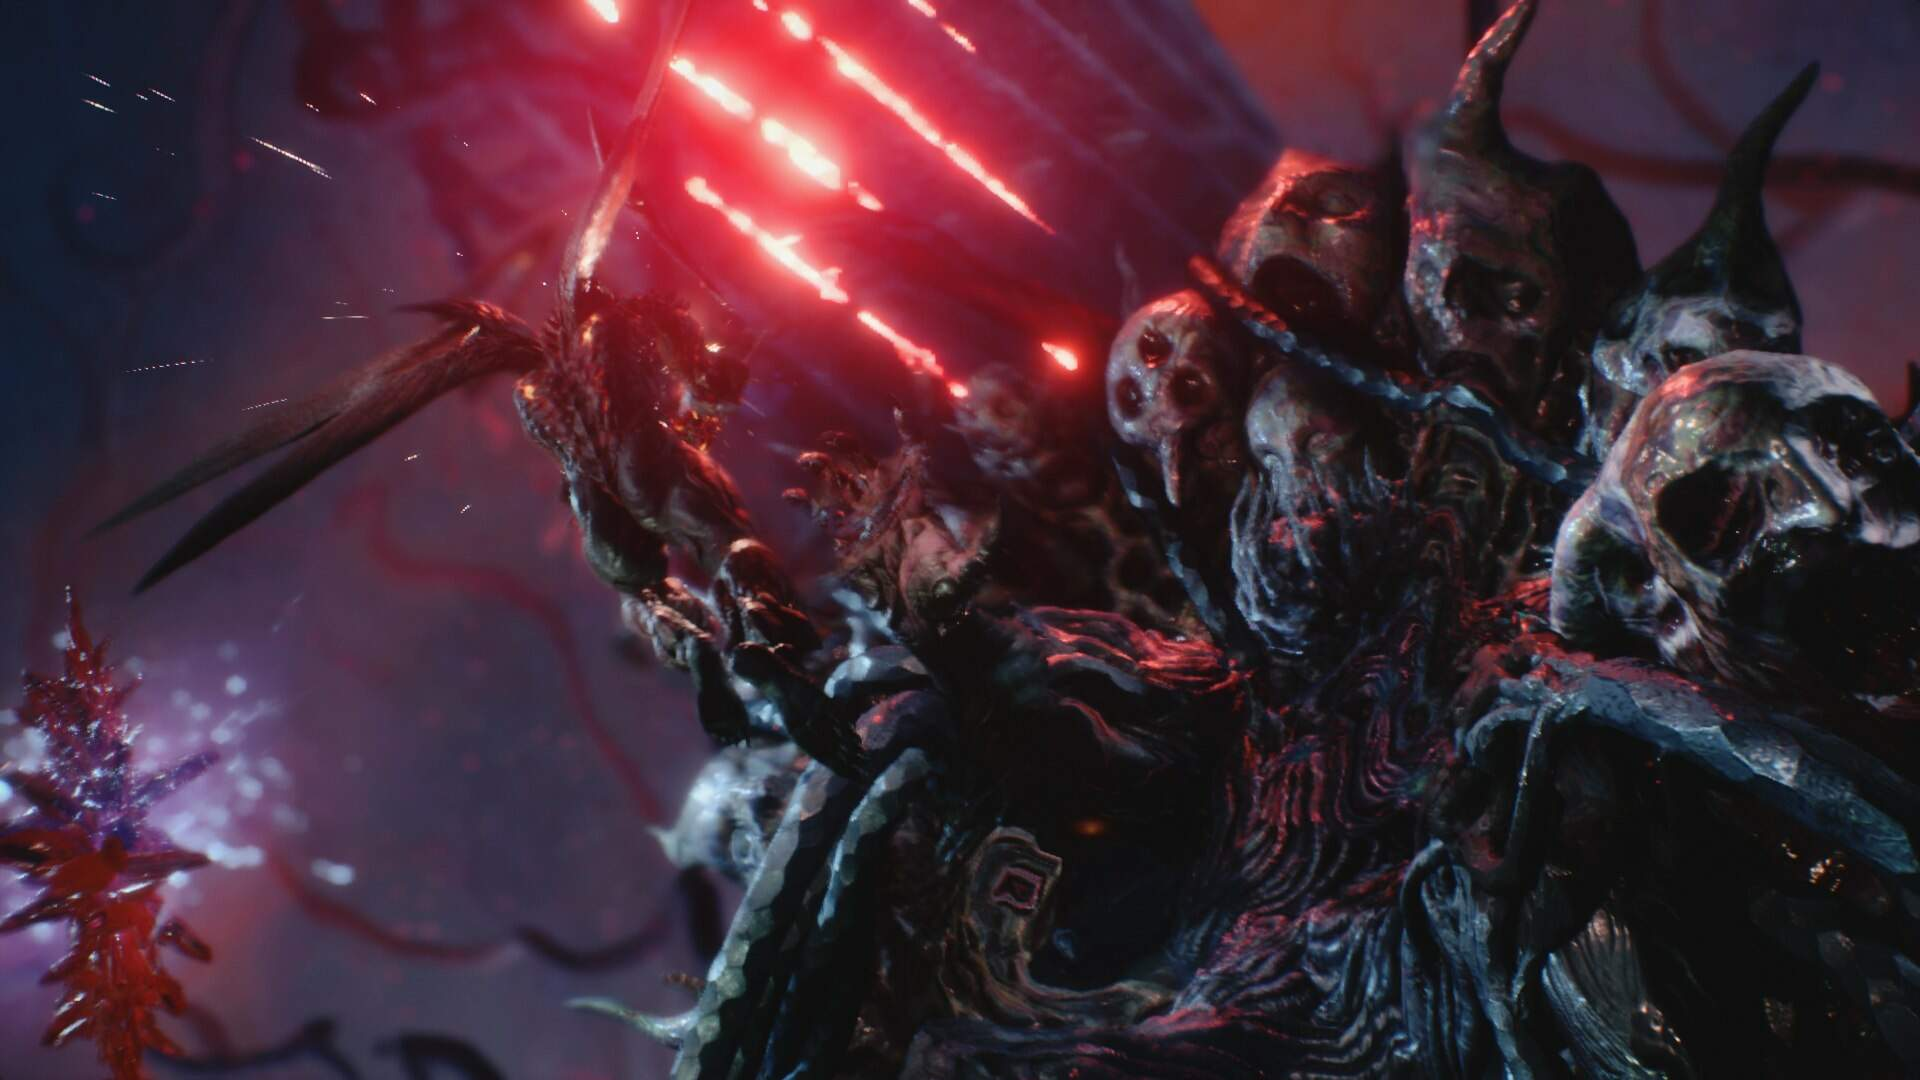 Devil May Cry 5 Secret Ending - How to Get the 'Well I'll be Damned' Trophy in Devil May Cry 5